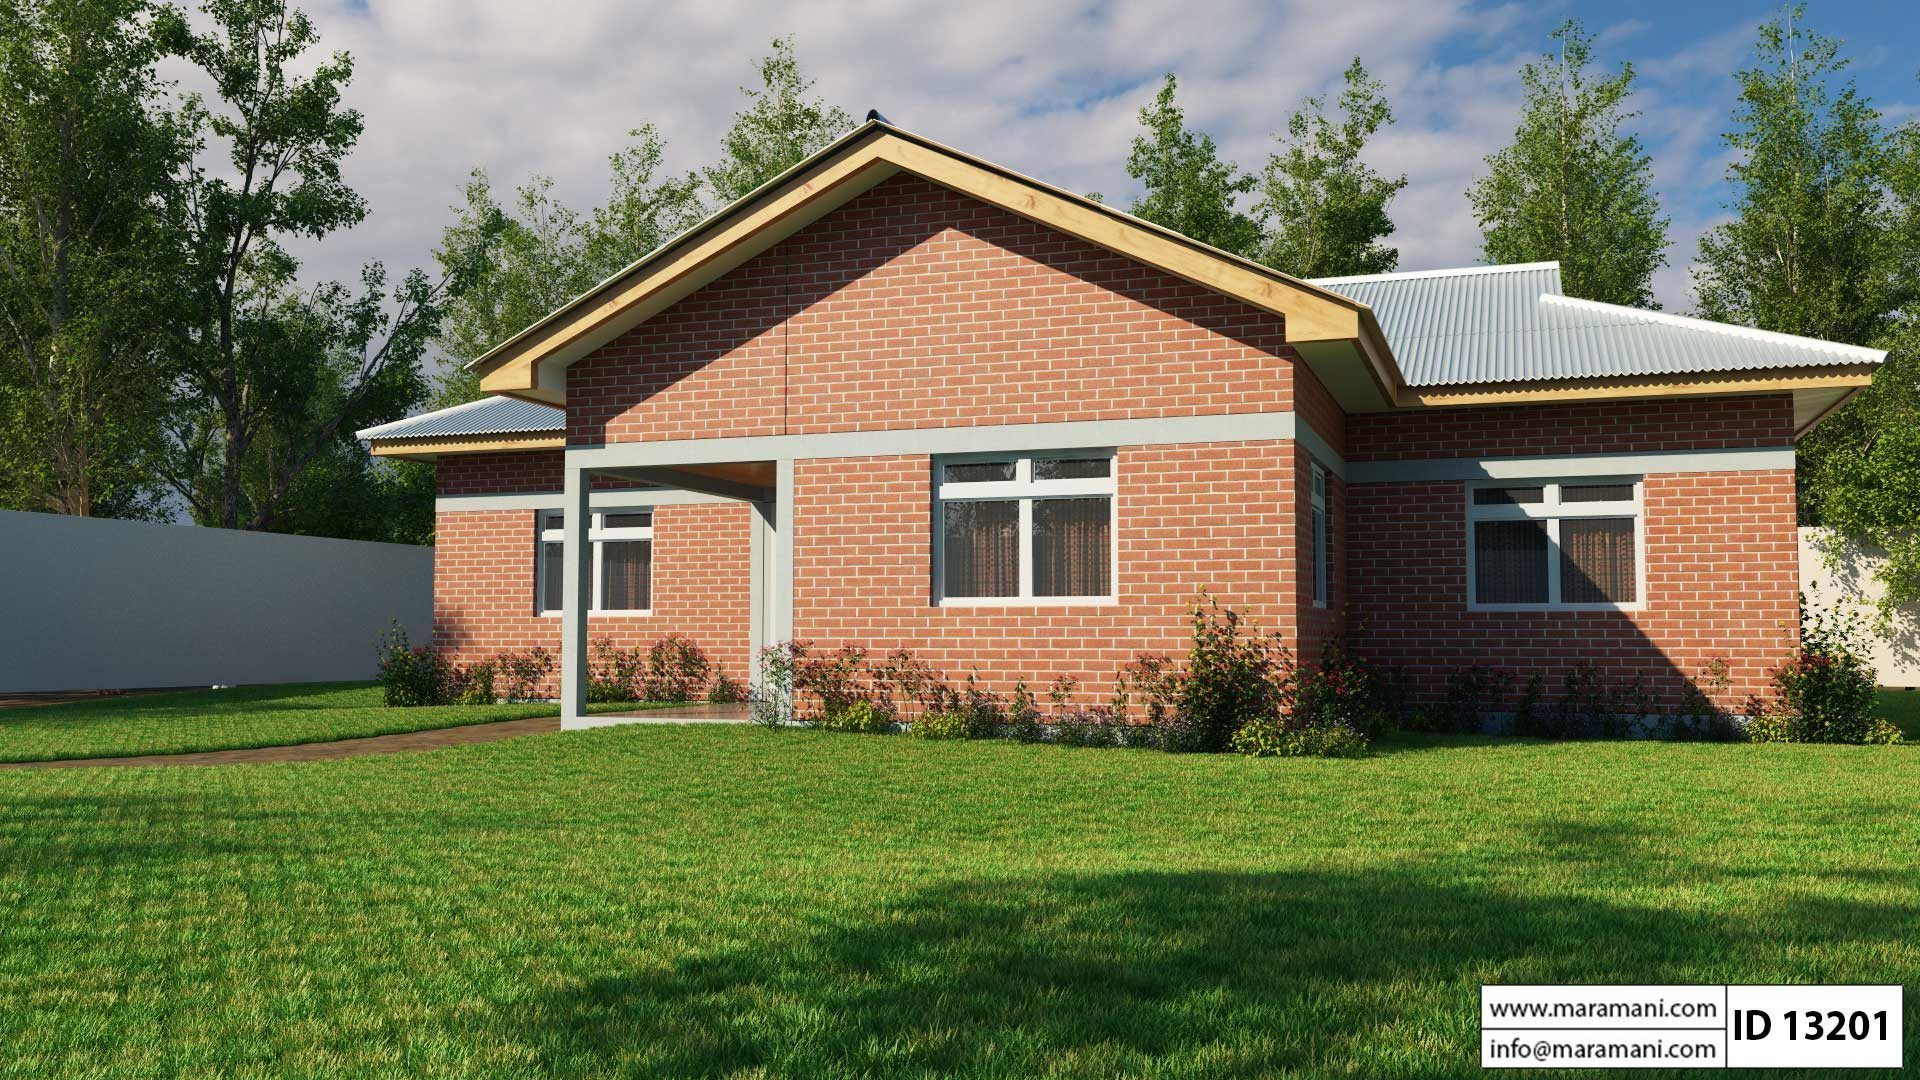 3 Bedroom House Plan Id 13201 Bedroom House Plans Brick House Designs My House Plans